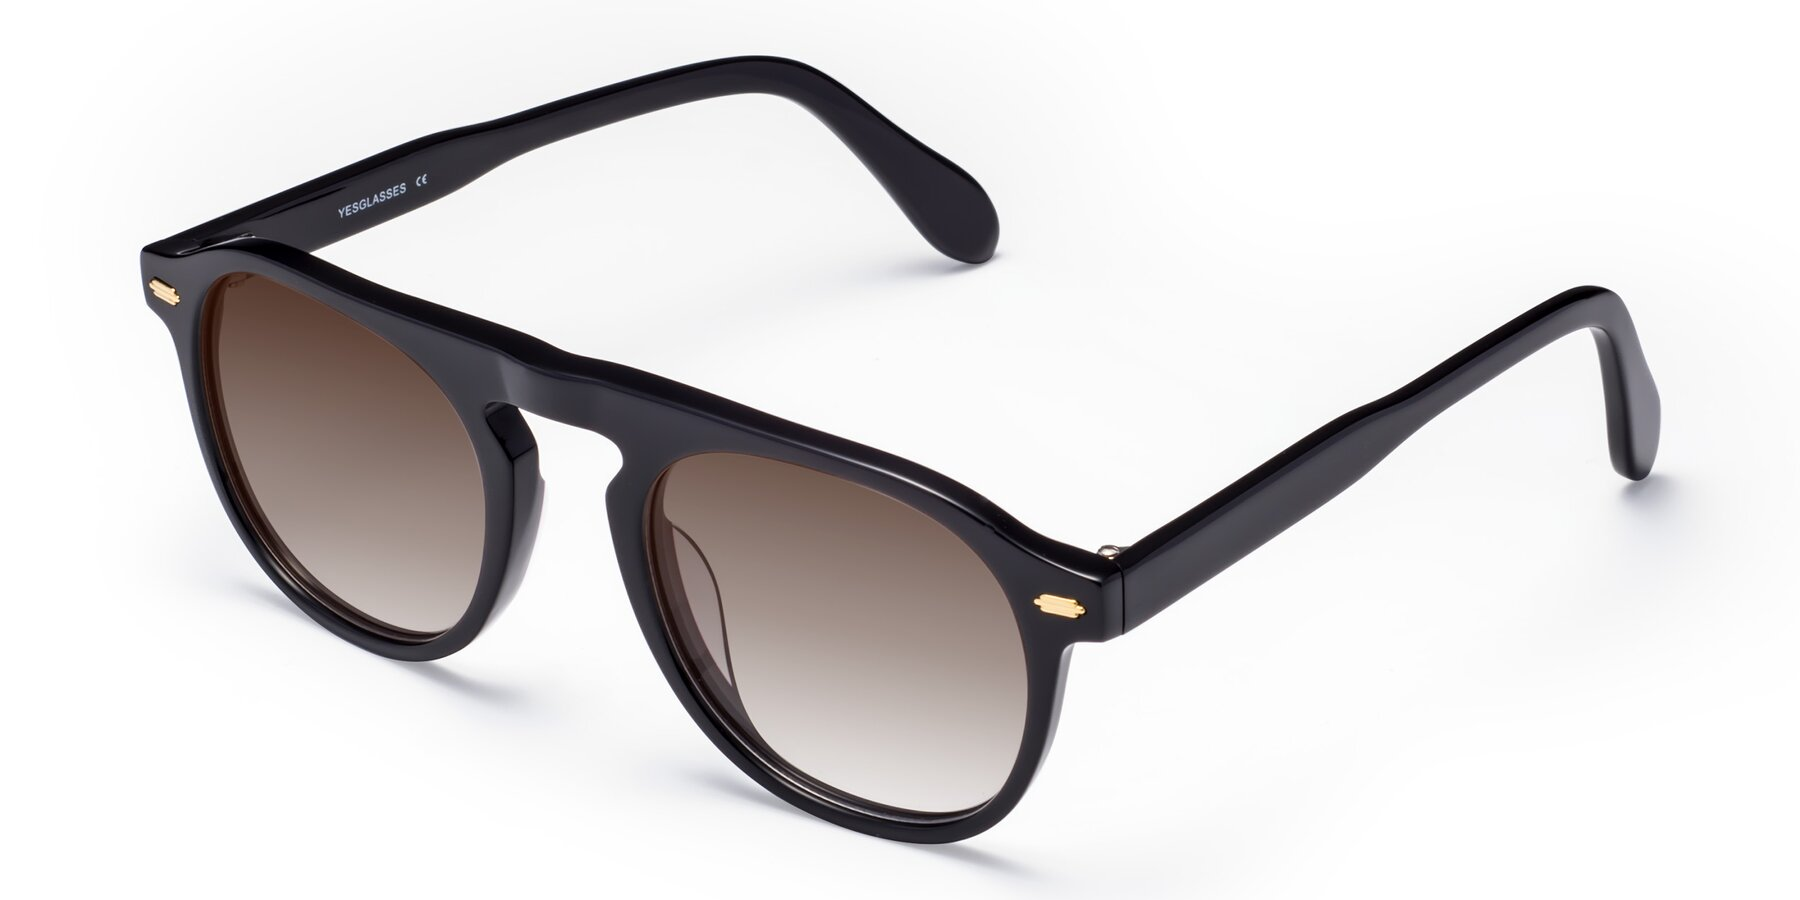 Angle of Mufasa in Black with Brown Gradient Lenses